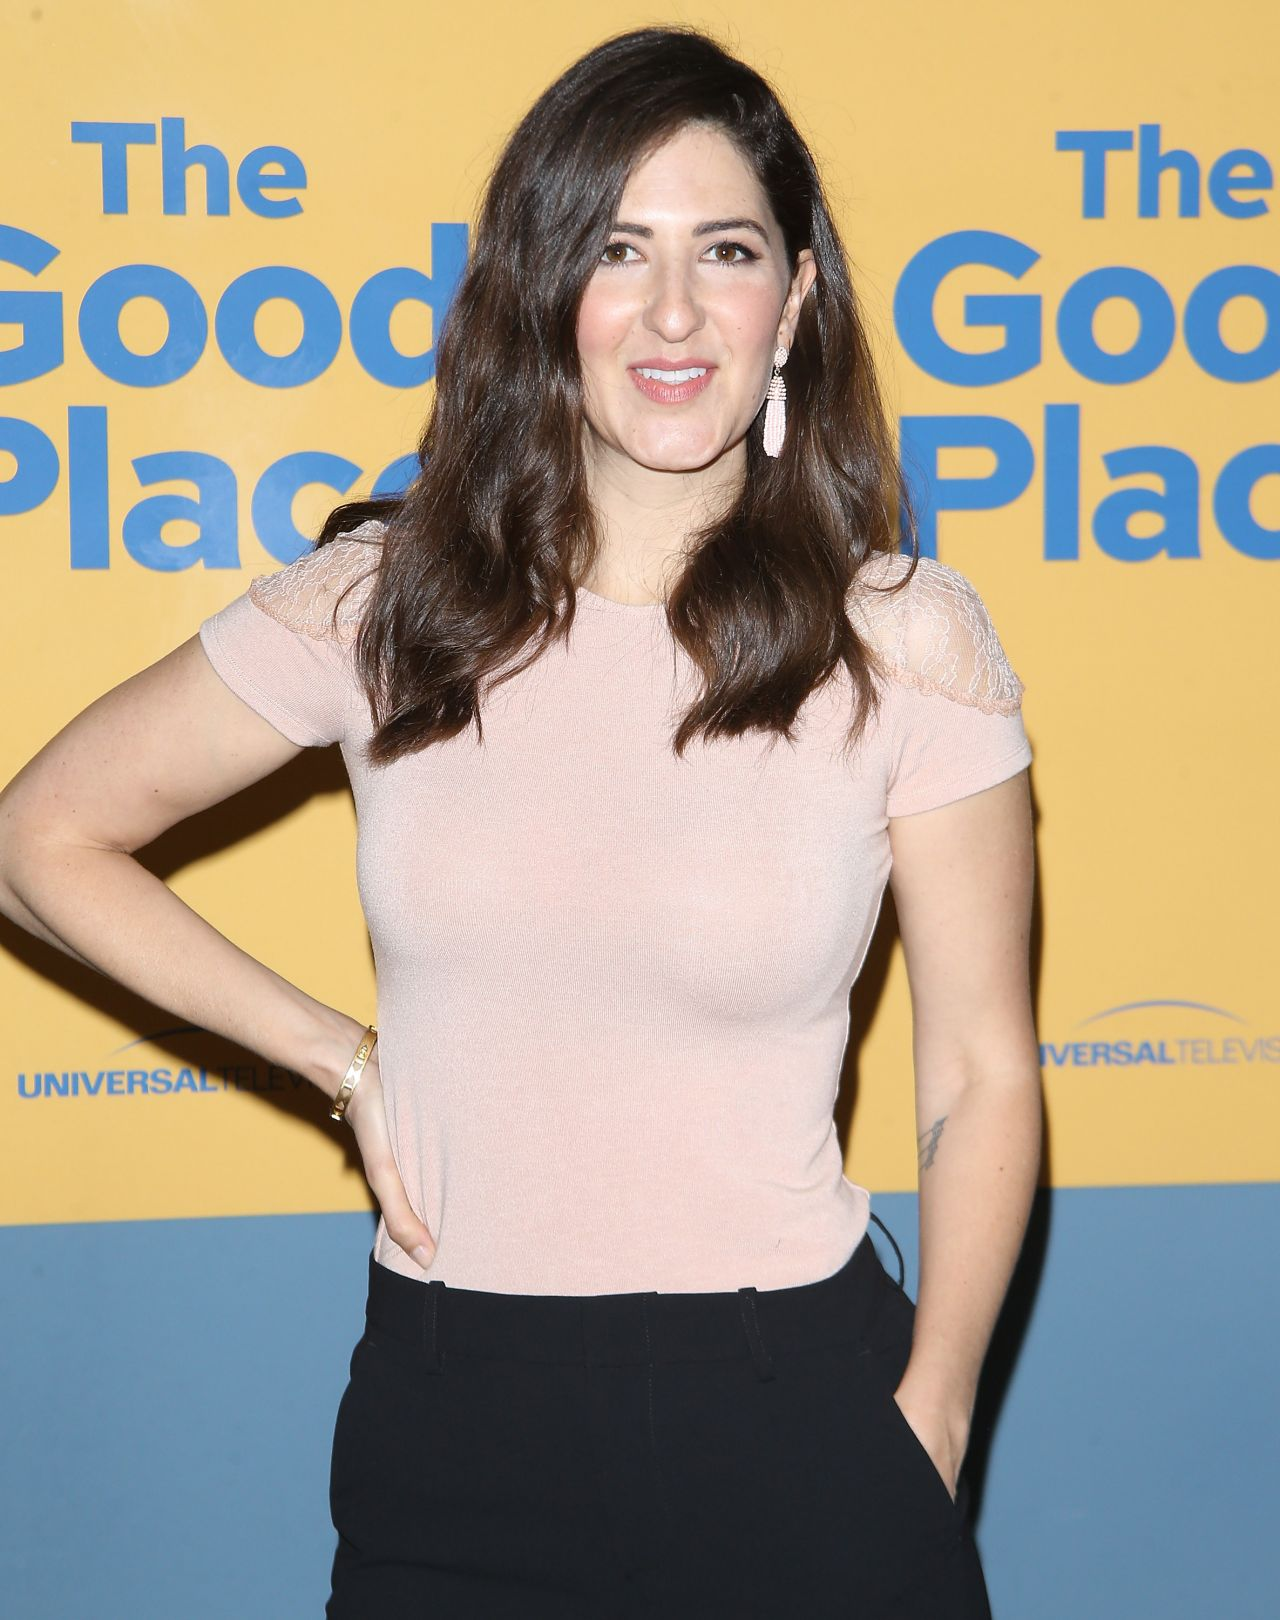 Darcy carden the good place fyc event in los angeles